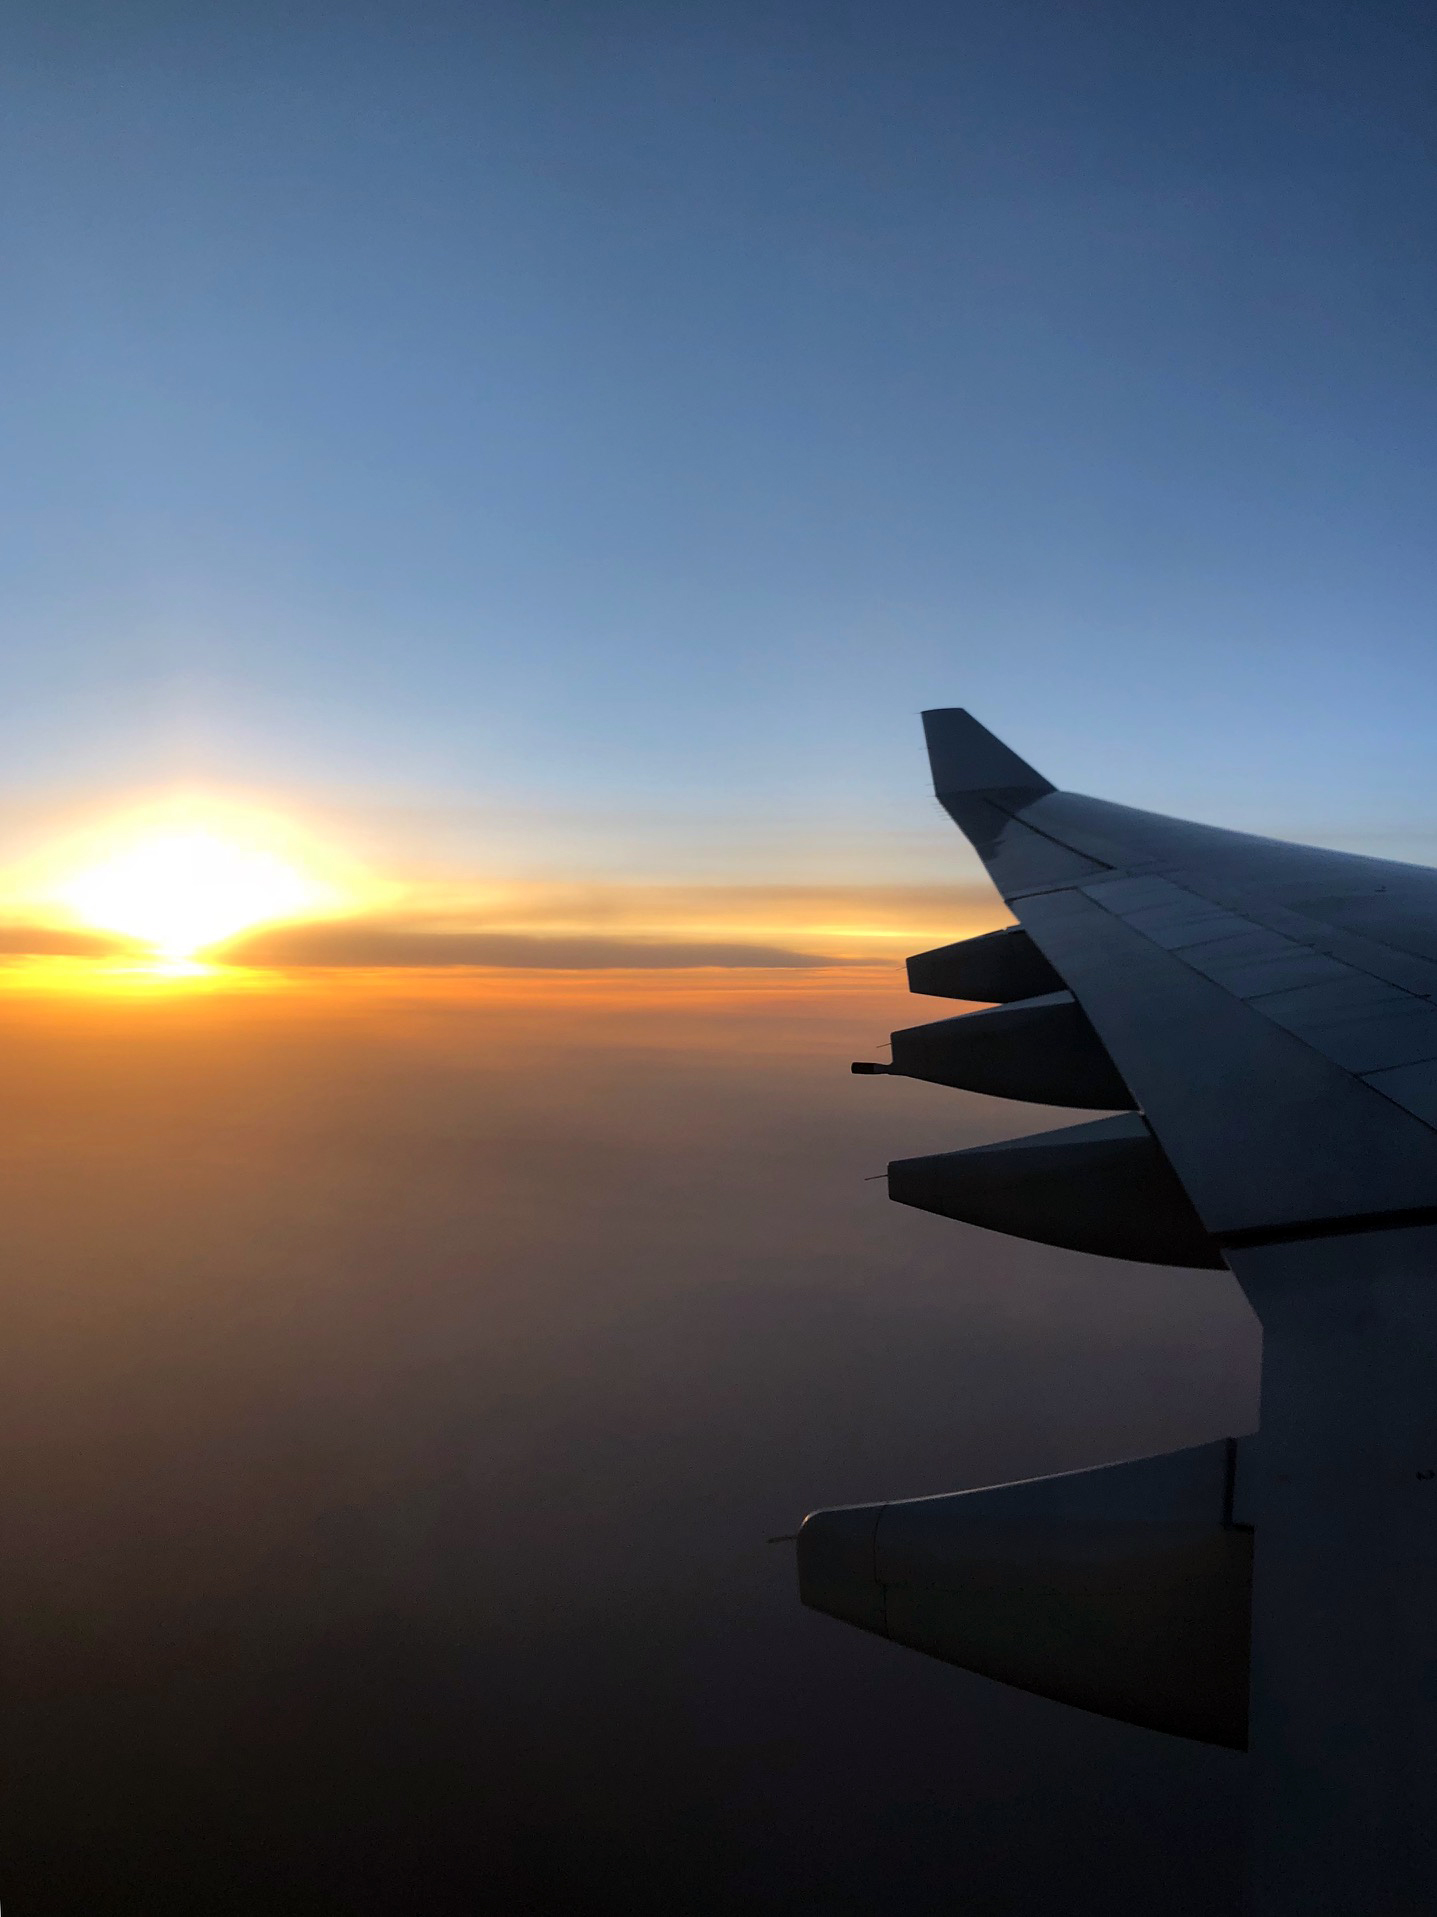 I try to avoid flying unless I have to. Air travel is a large source of greenhouse gas emissions. I calculated my carbon footprint here: CarbonFootprint.com